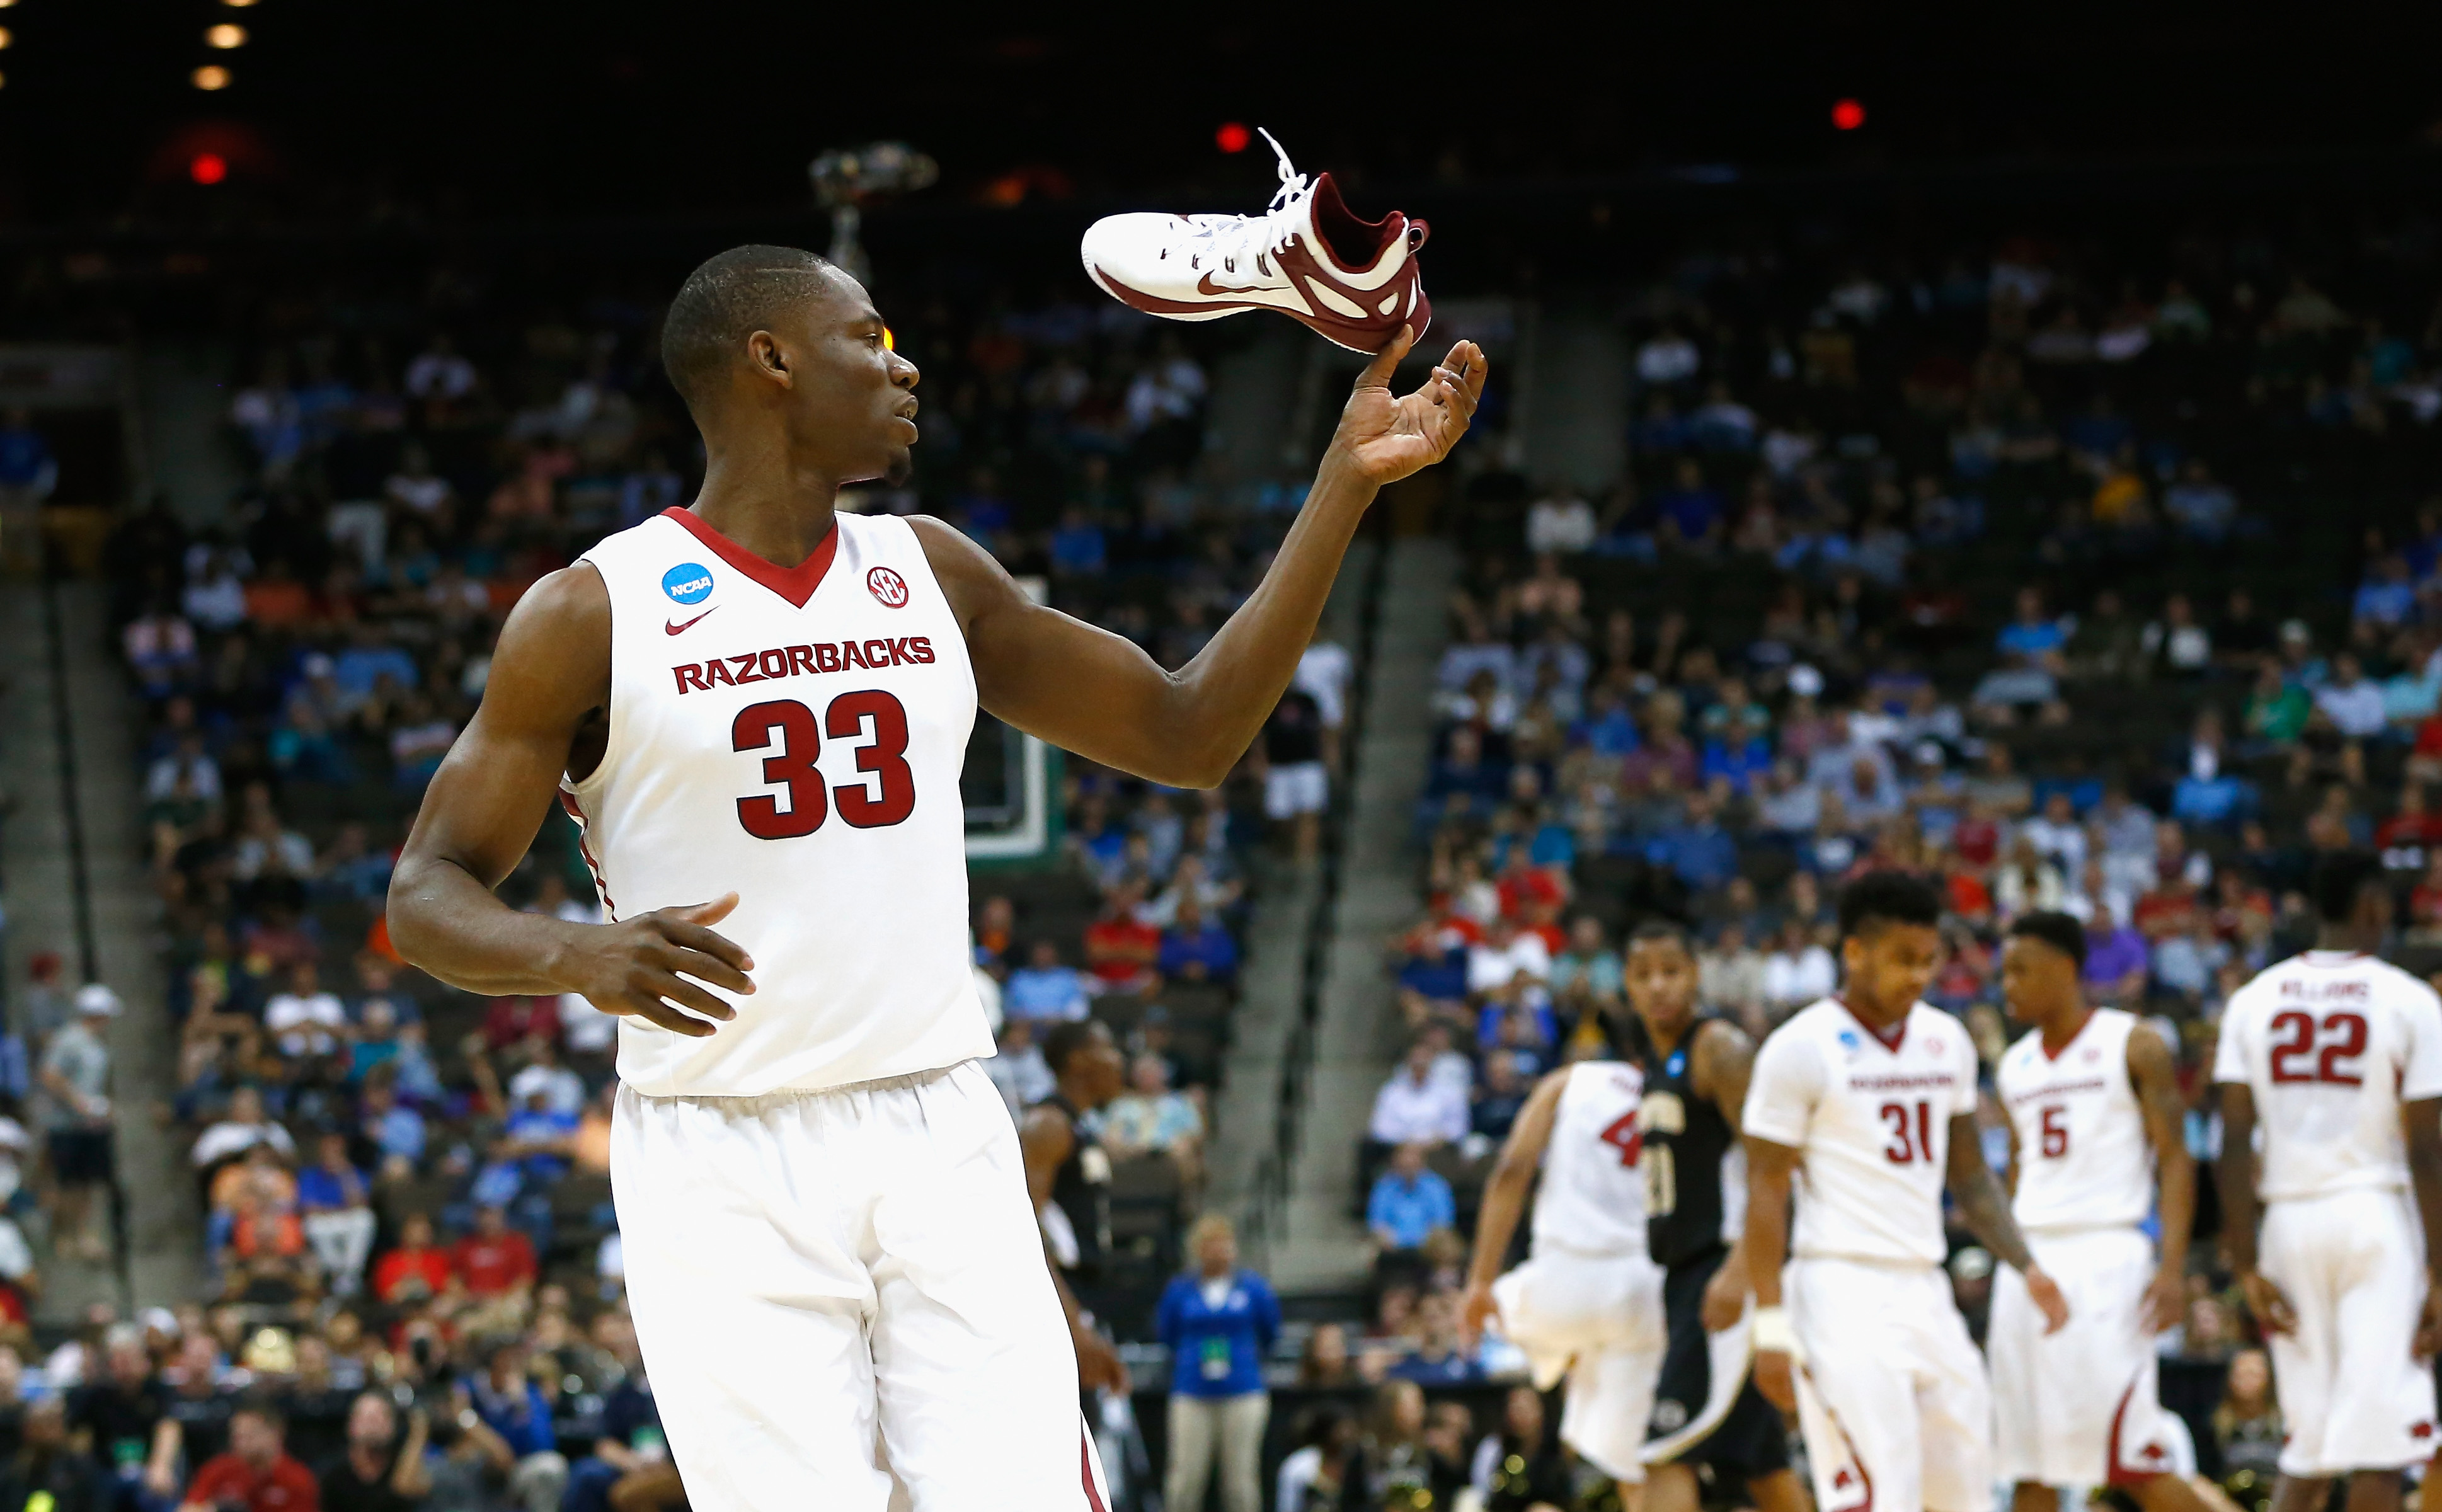 Moses Kingsley of Arkansas loses his shoe against Wofford in one of two shoe-related incidents during the Razorbacks game.(Getty)